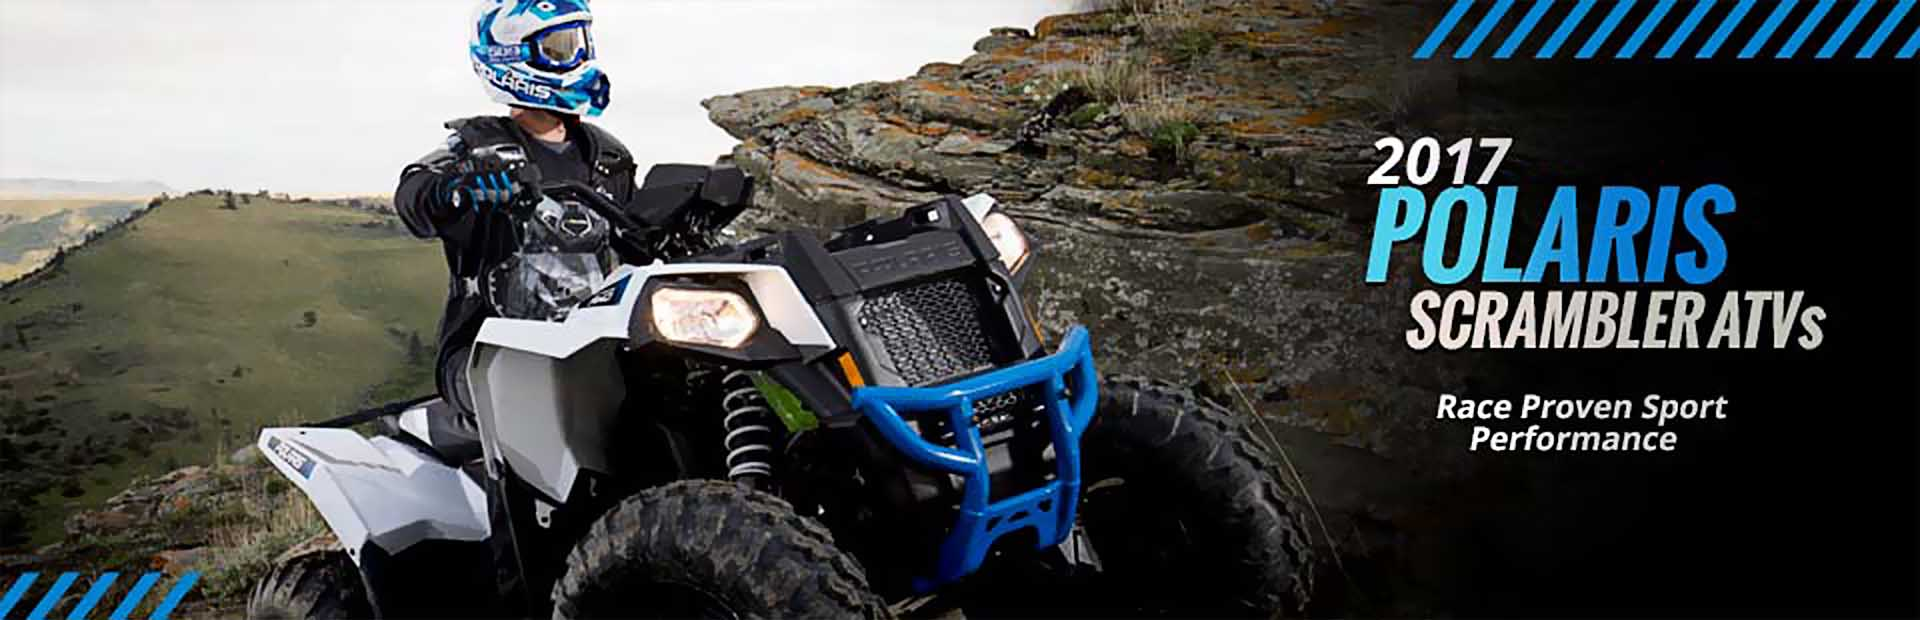 2017 Polaris Scrambler ATVs: Click here to view the models.